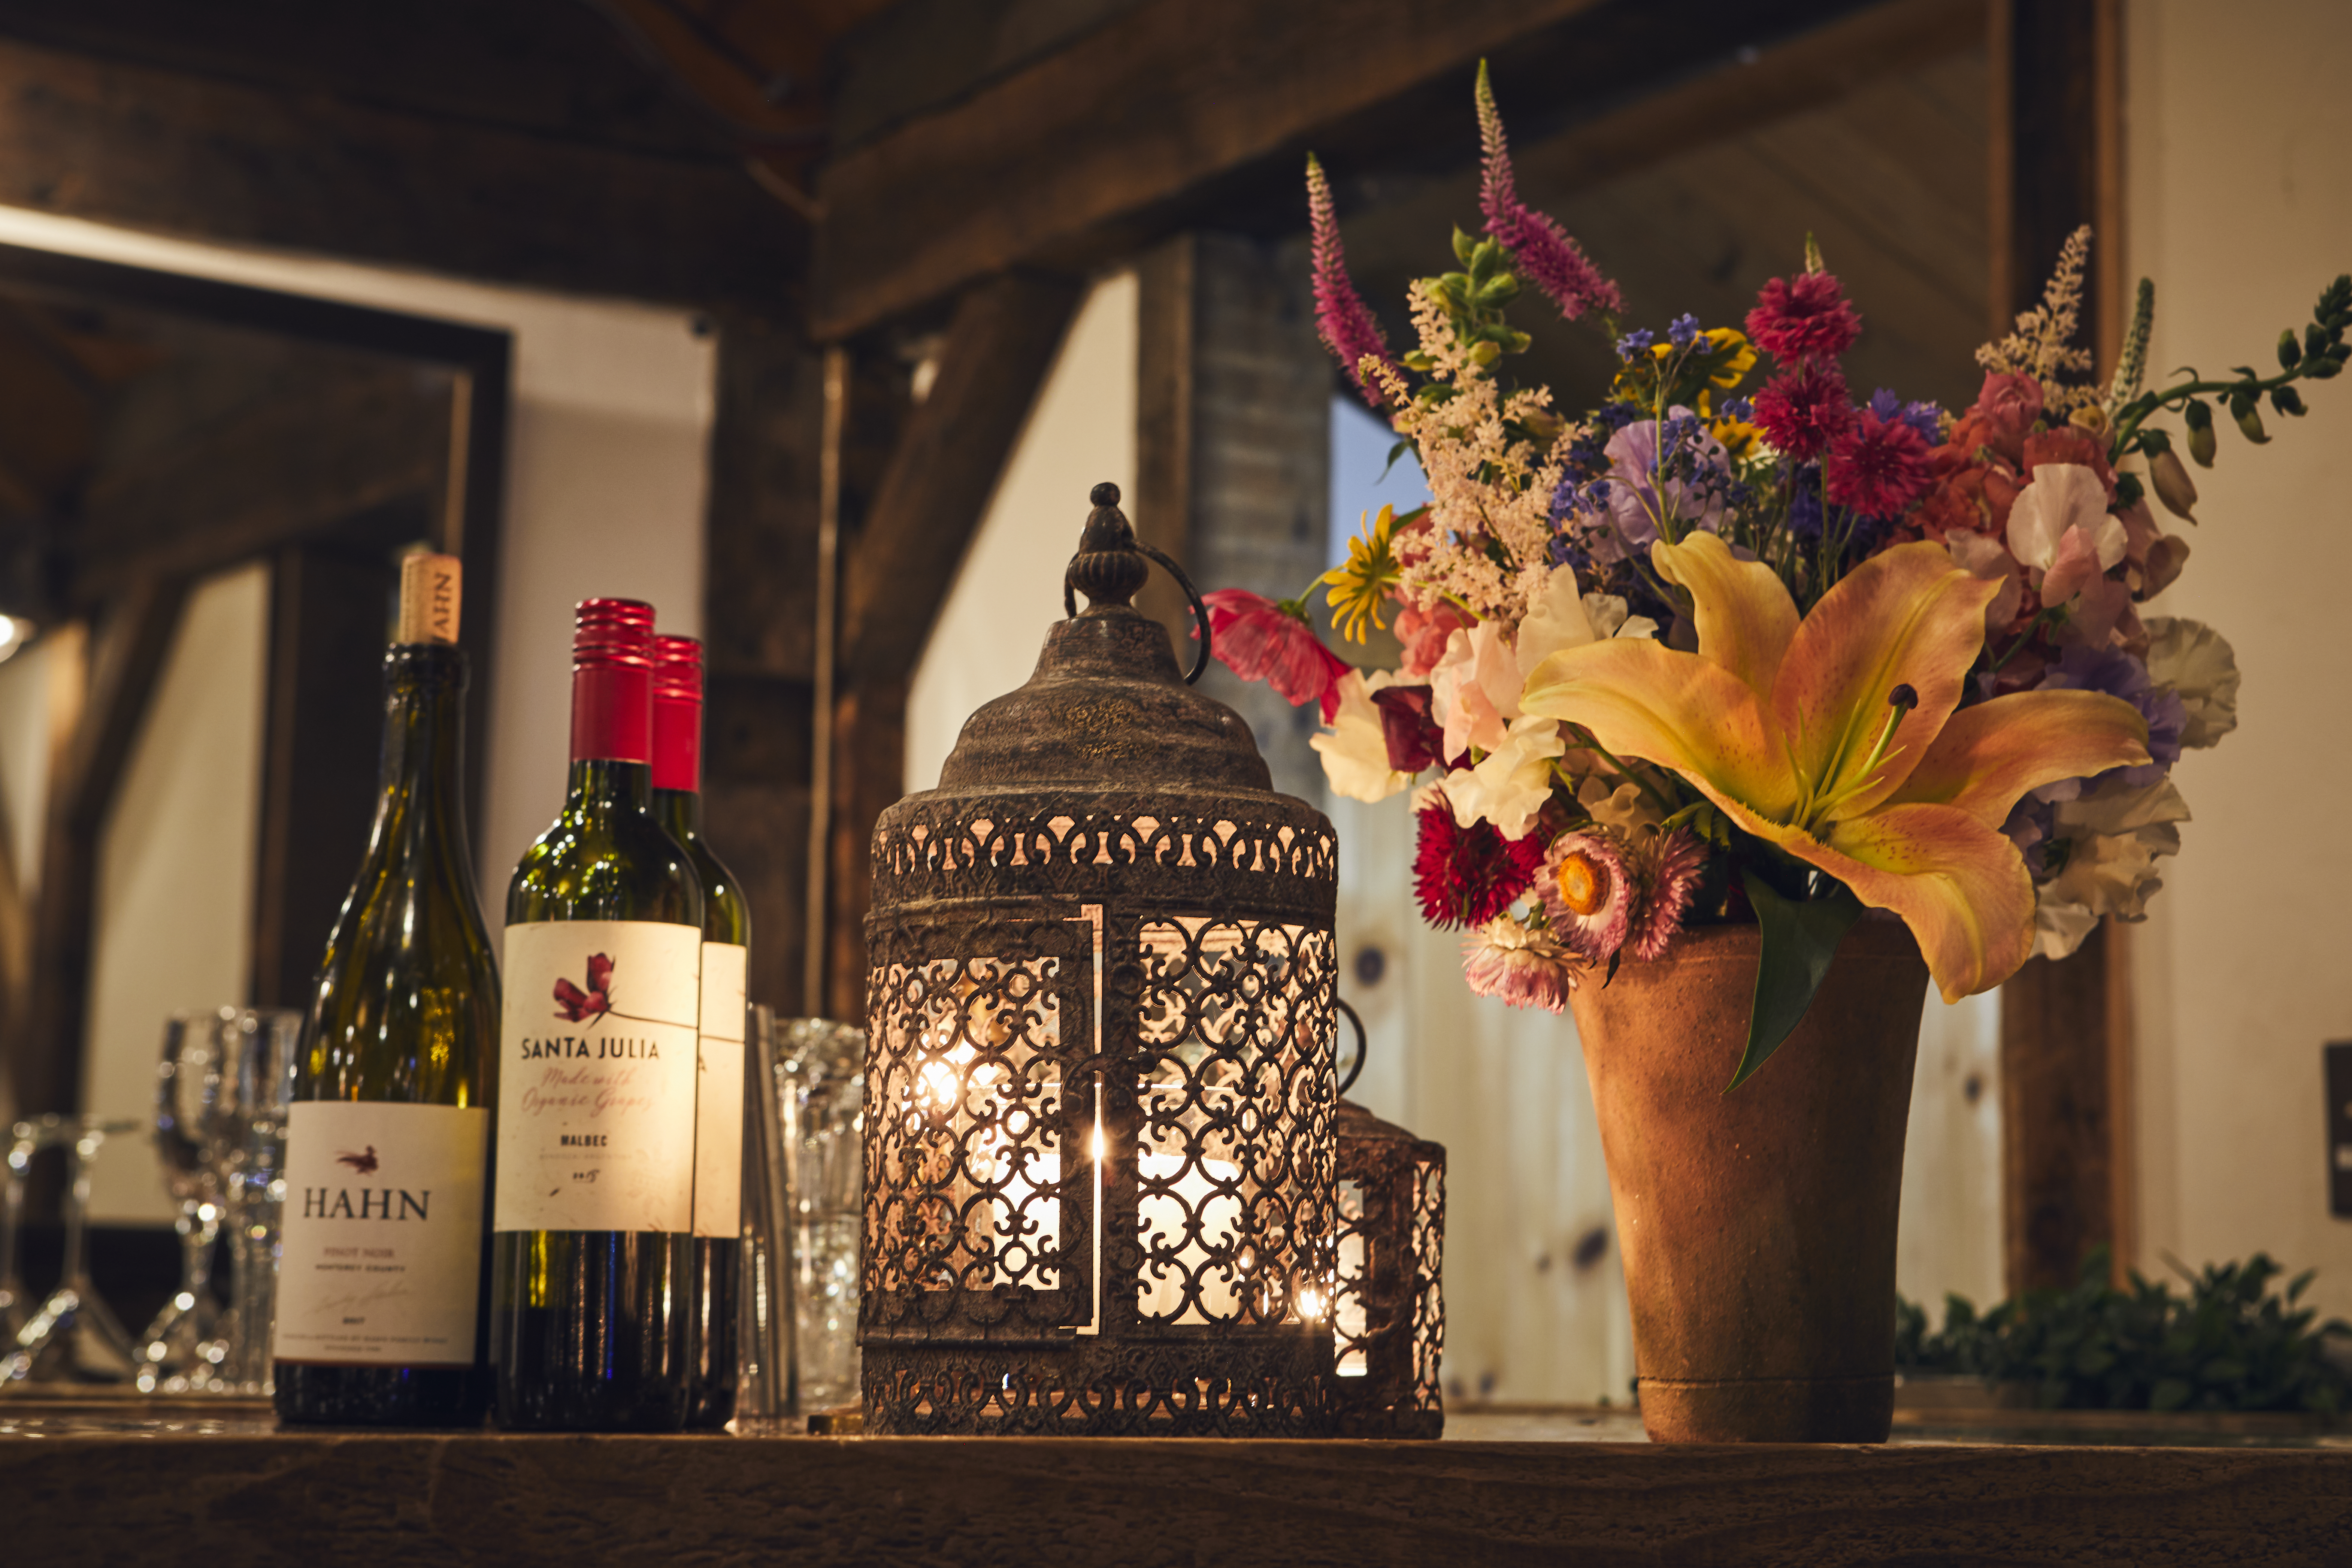 Rustic lantern with vase of flowers and wine bottles